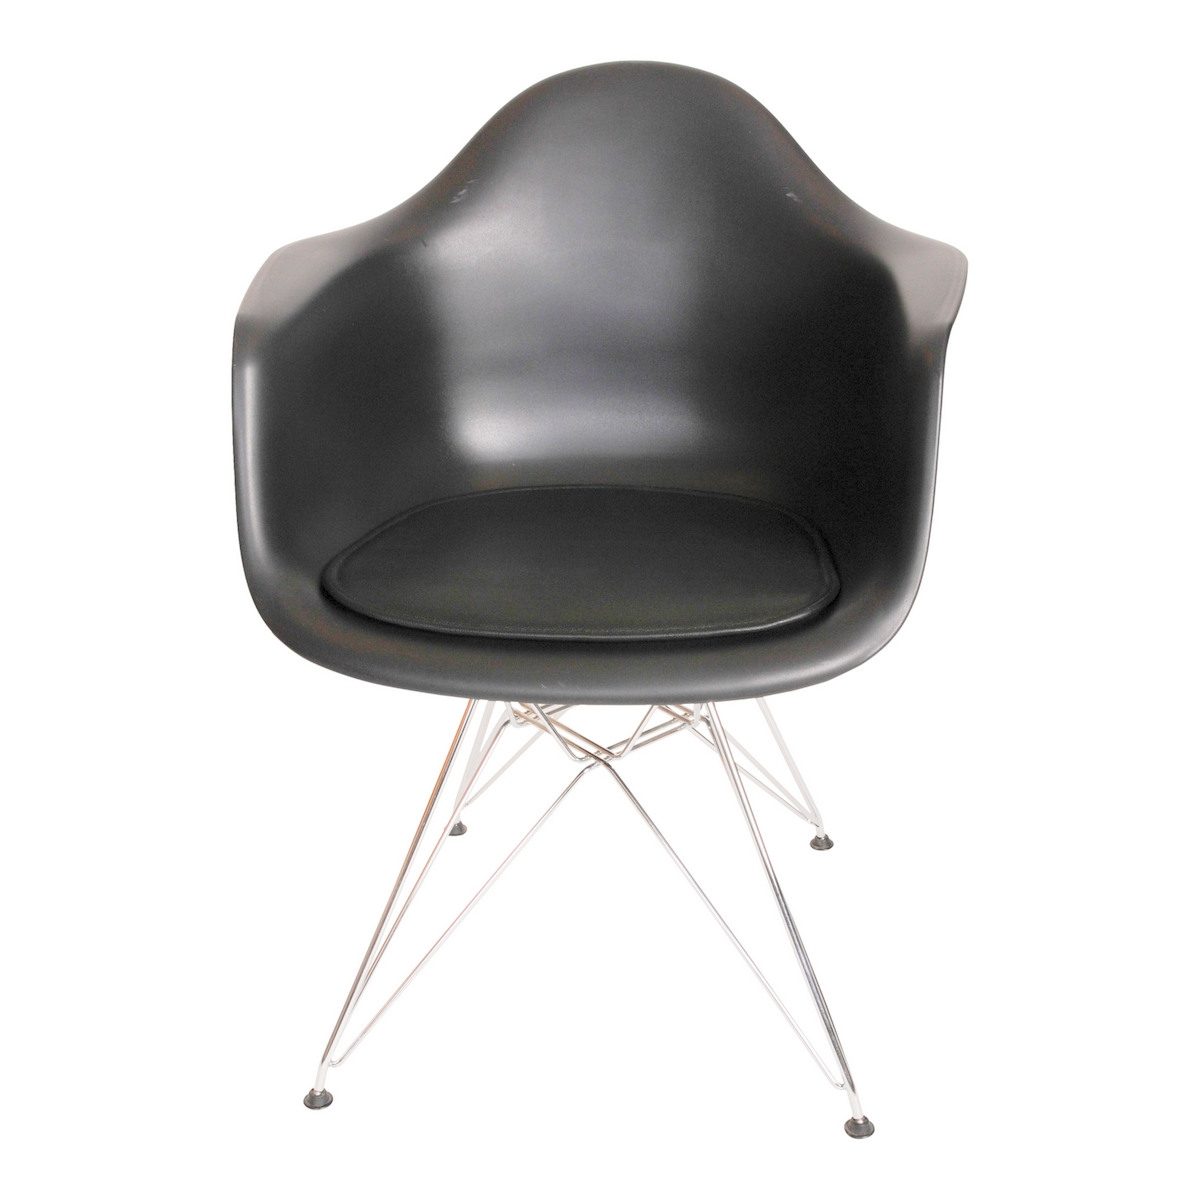 Cushion In Luxury Leather For Eames Plastic Armchair DAR